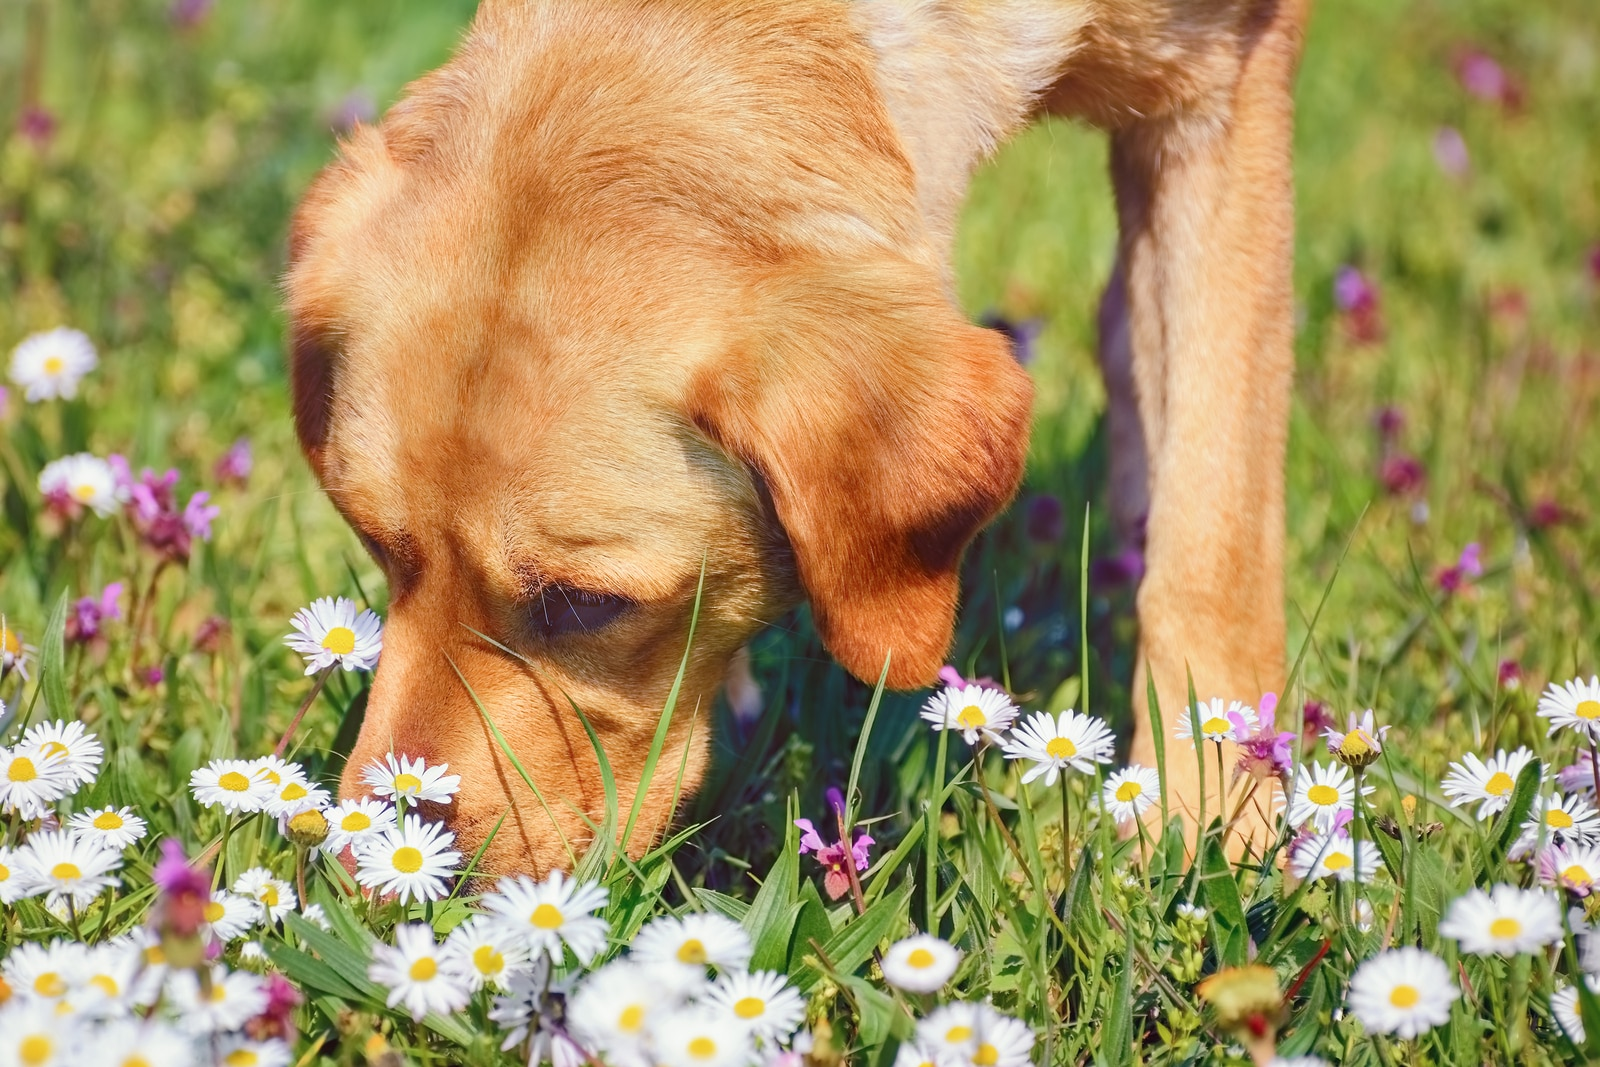 Yellow lab mix sniffs flowers in a field.